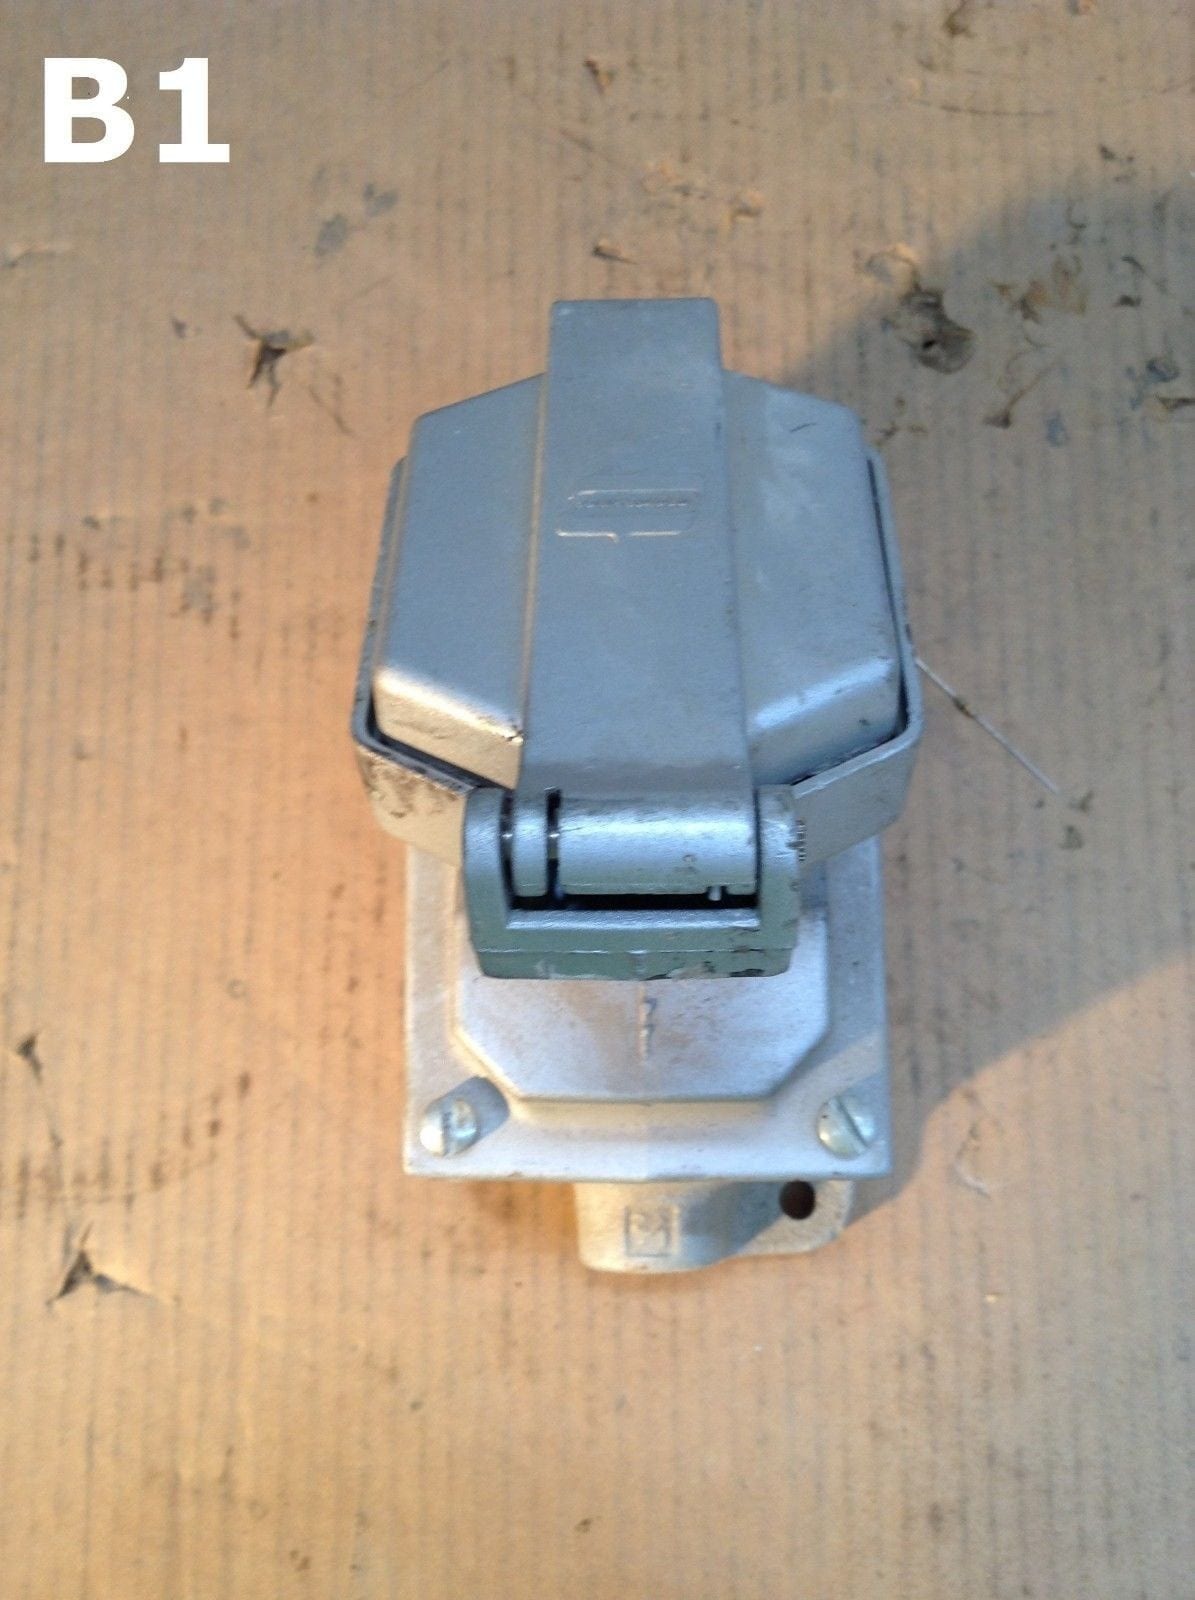 Crouse Hinds Enr11201 Explosion Proof Receptacle